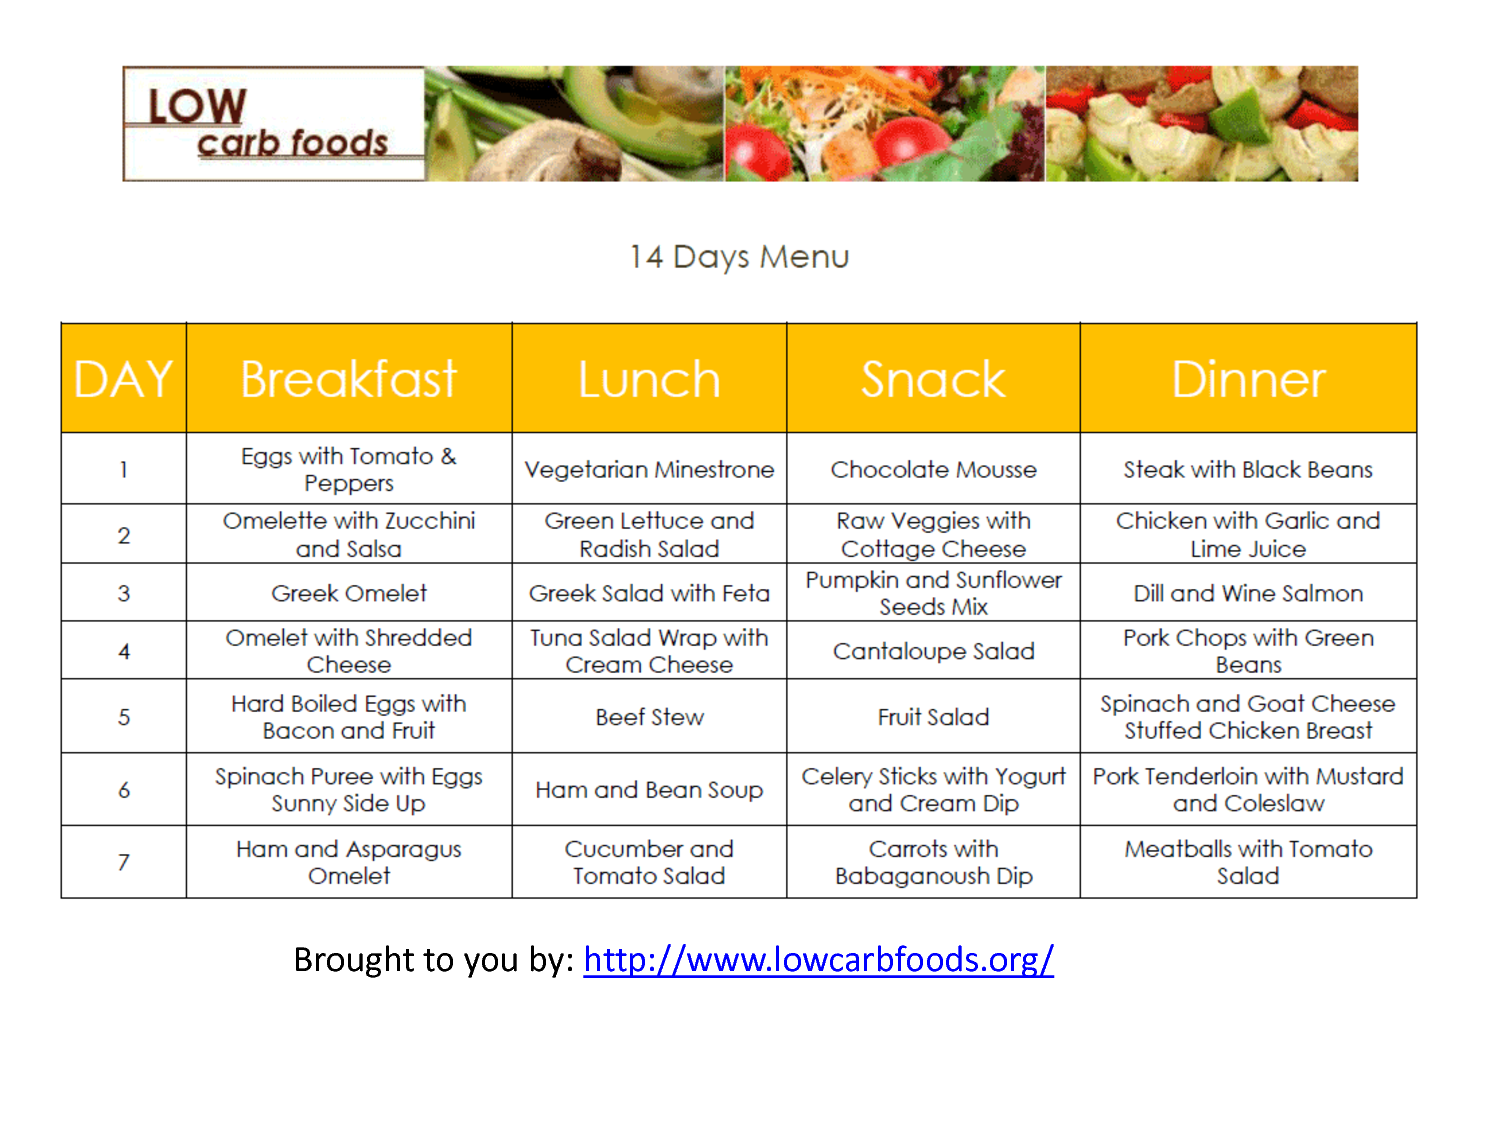 Free Low Carb Diet Plan | Low Carb 2 week Menu in 2019 ...